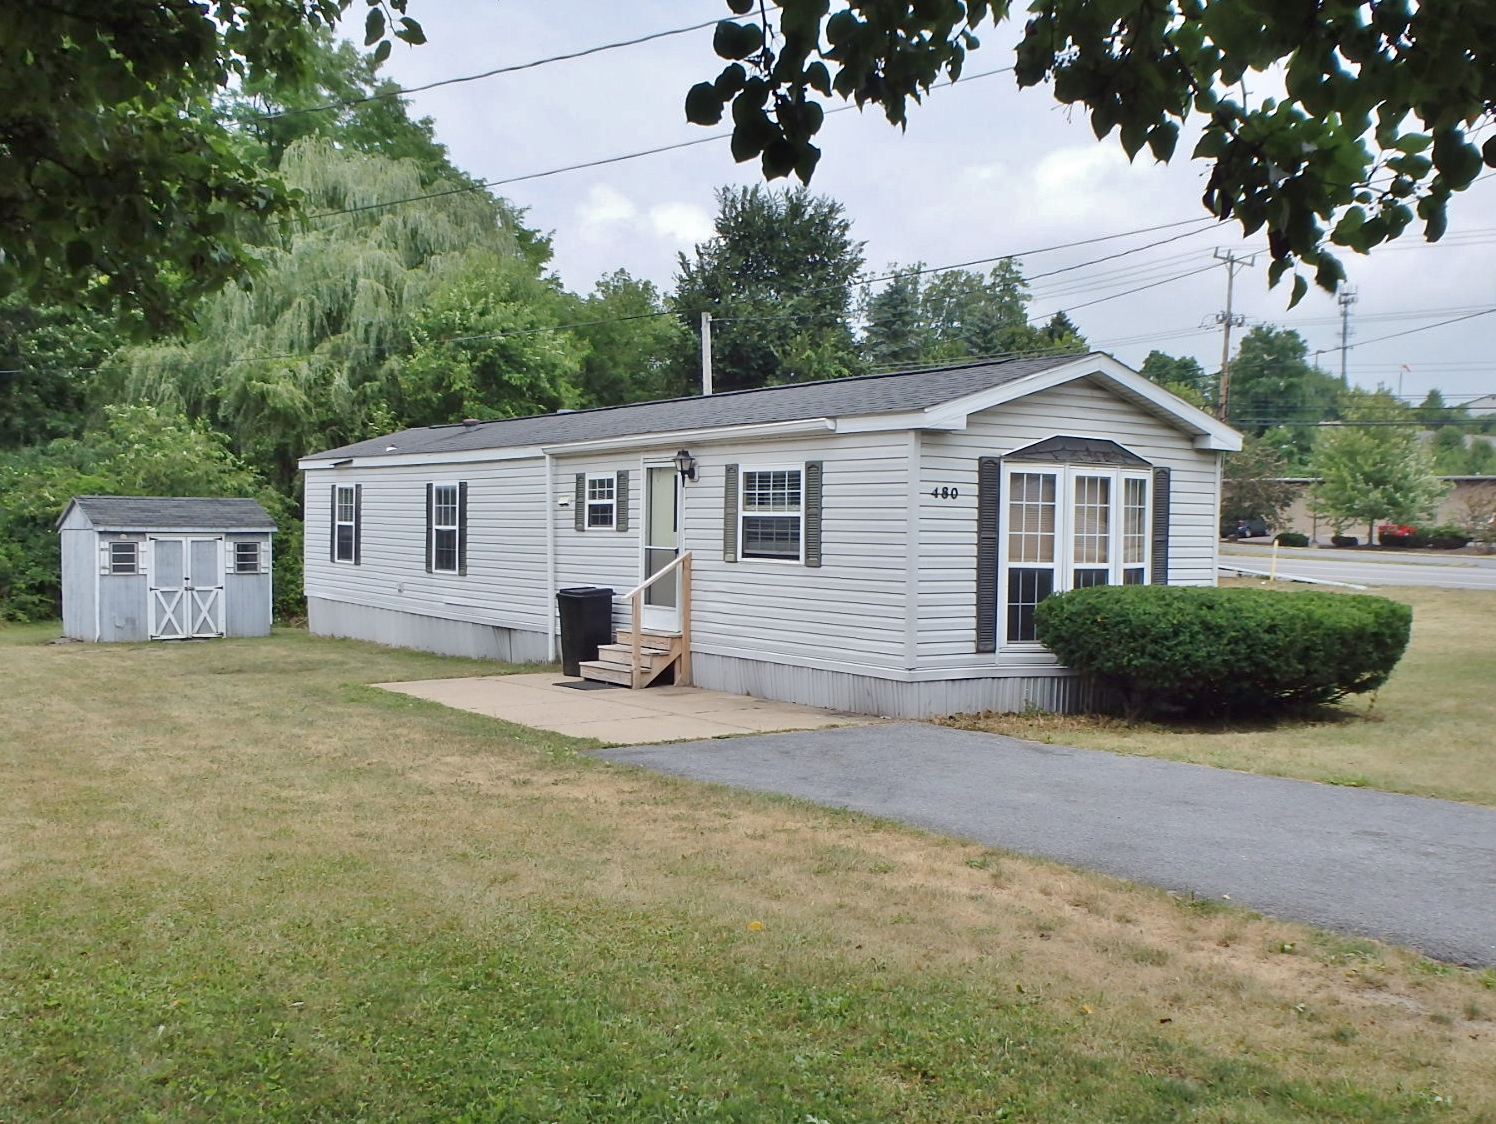 474 480 Douglas Drive 2 Bedroom Mobile Home For Rent State College Pa 16803 Park Forest